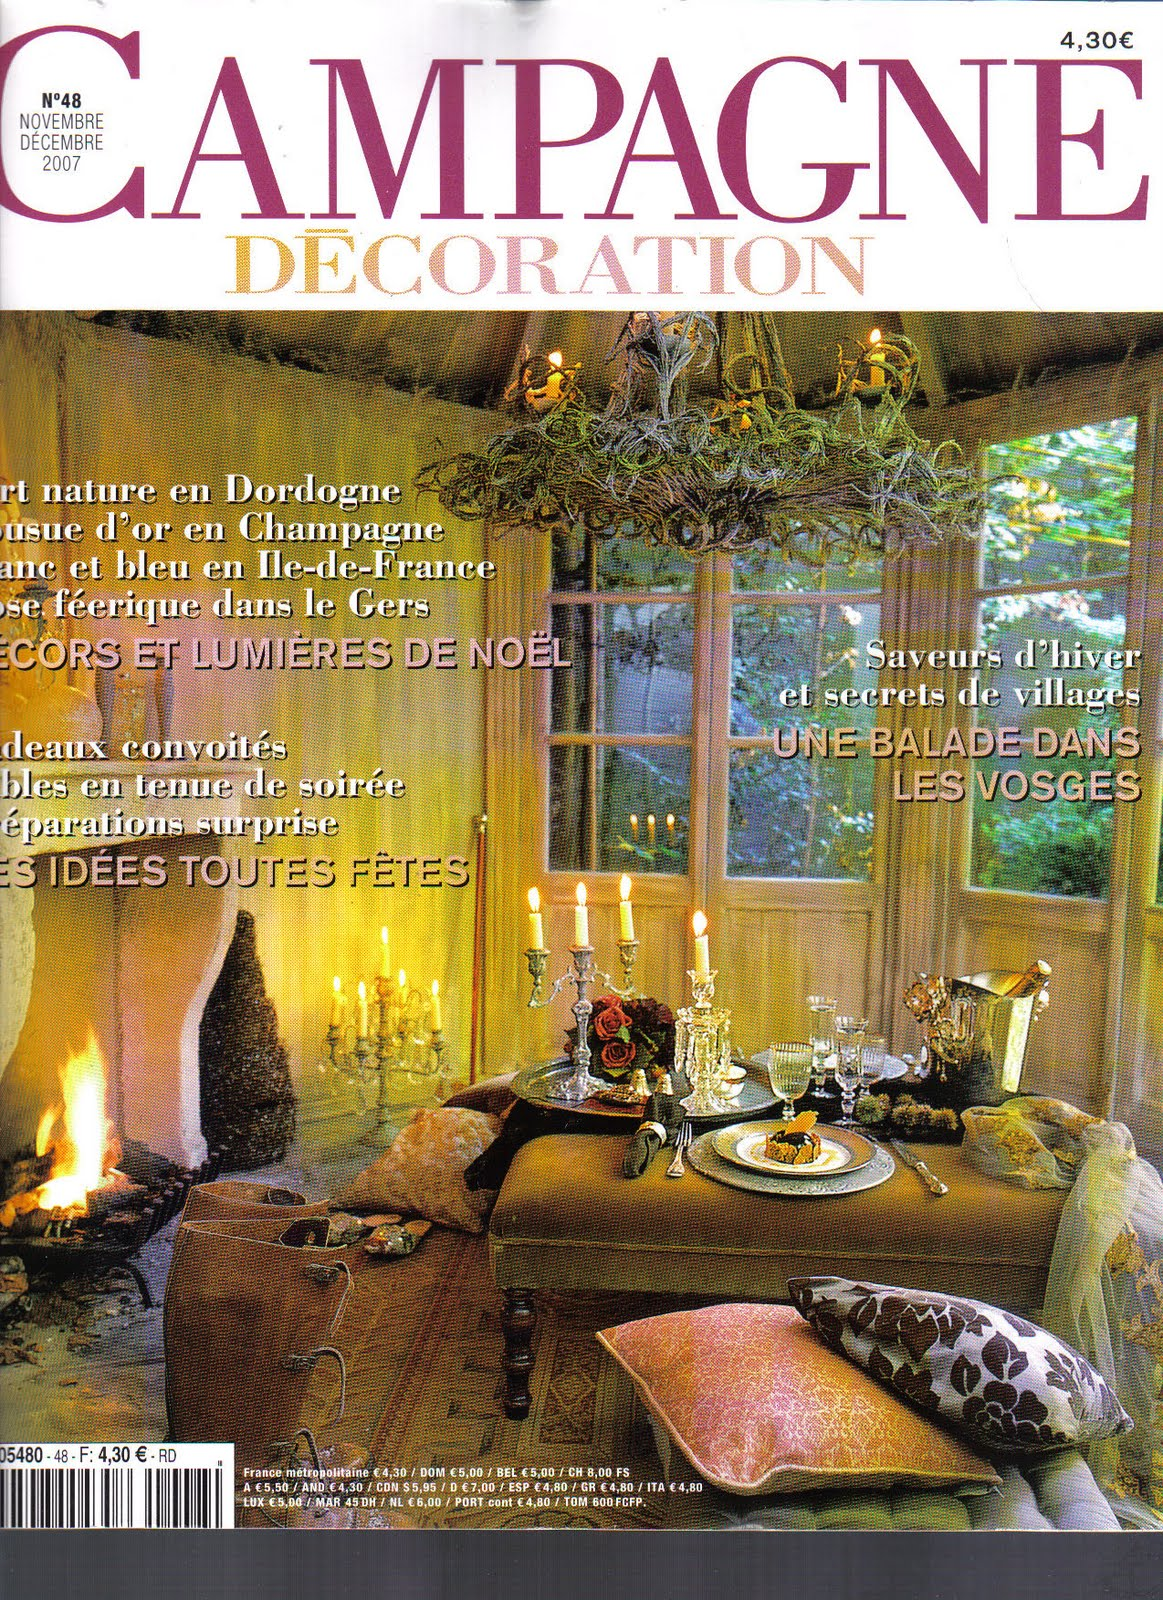 Magazine Campagne Décoration Vintage Maison French Chateau Chic For The Winter Season